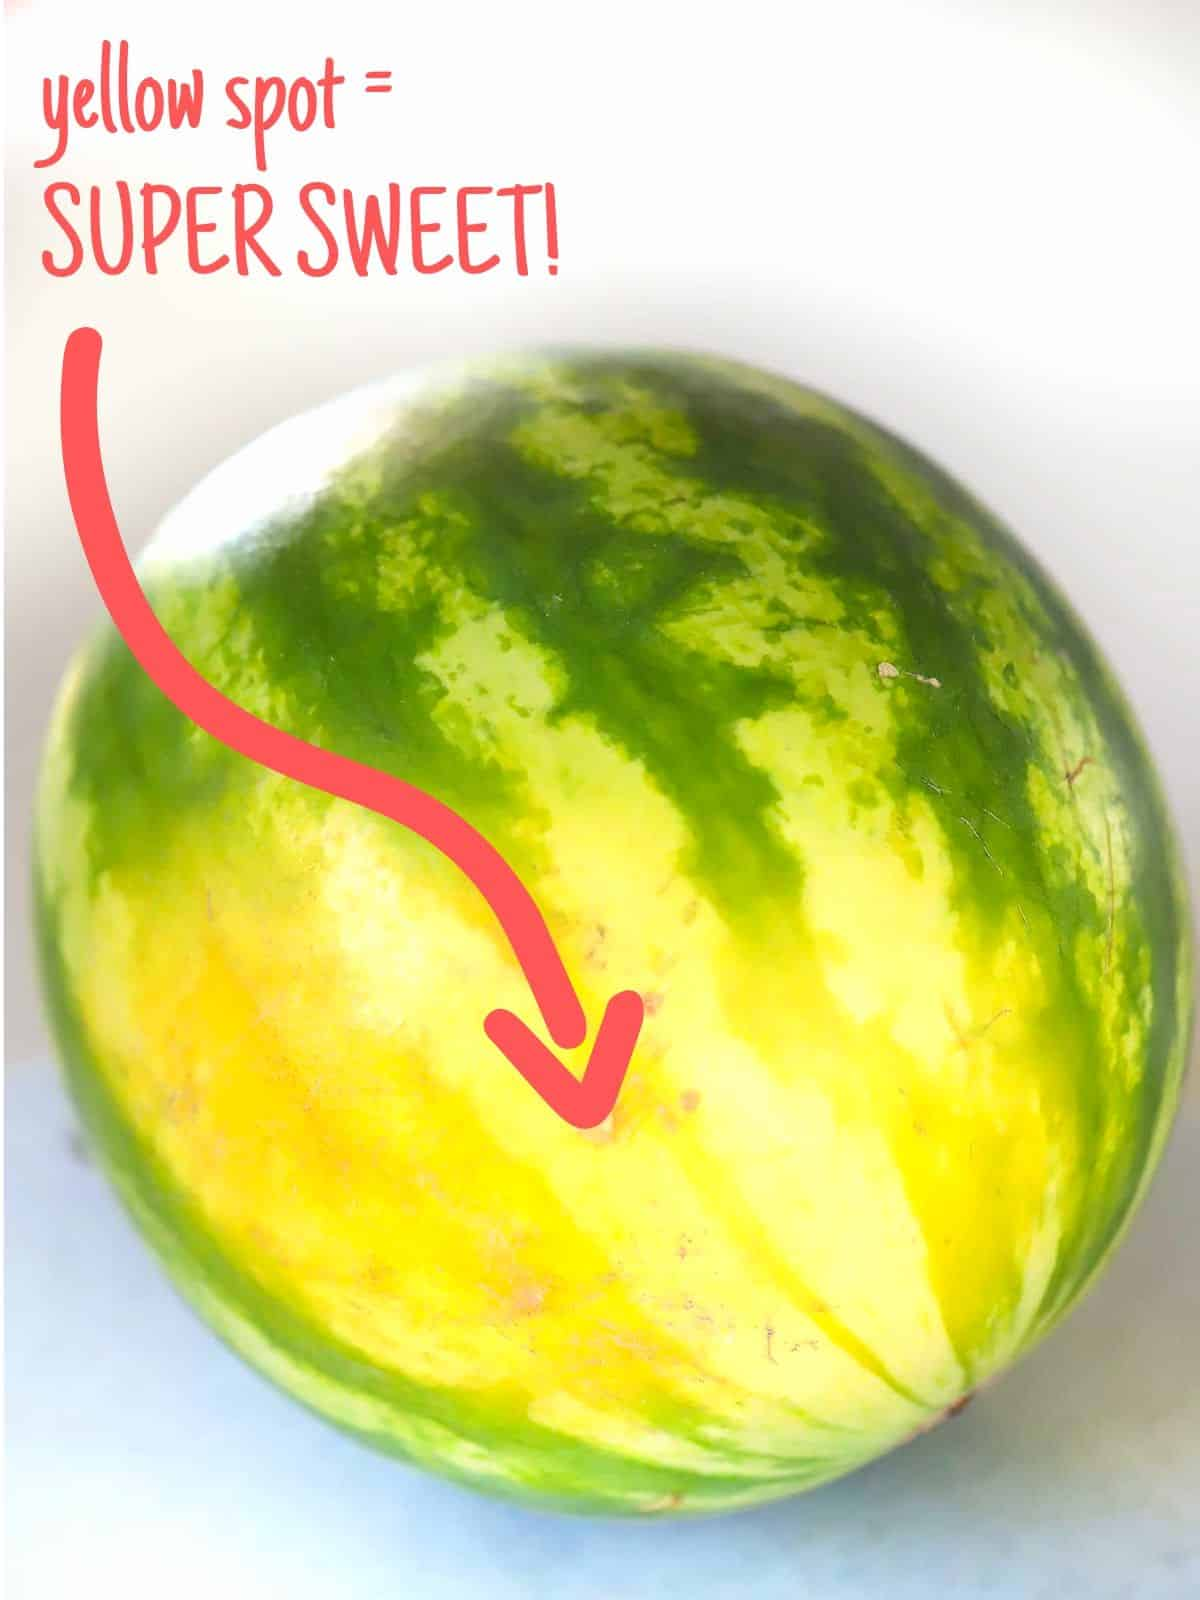 A yellow spot on a watermelon indicates how sweet and ripe it is